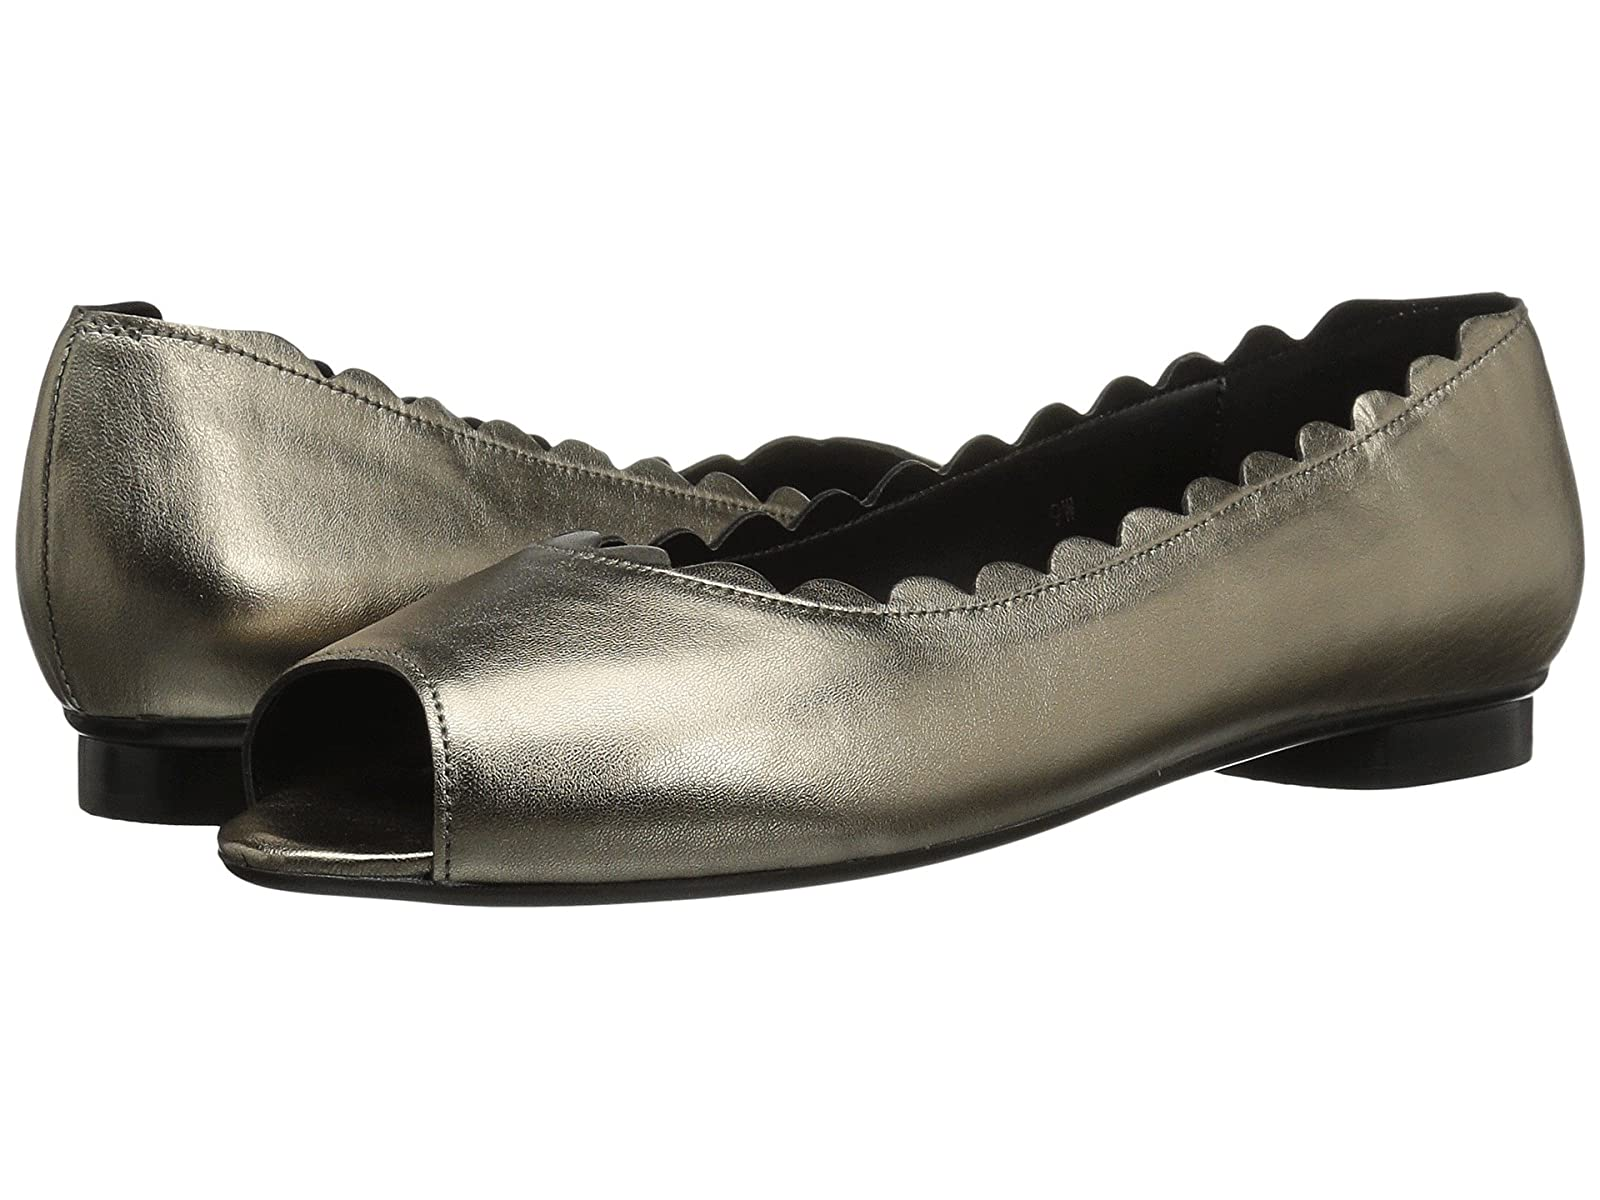 Vaneli ArtyCheap and distinctive eye-catching shoes